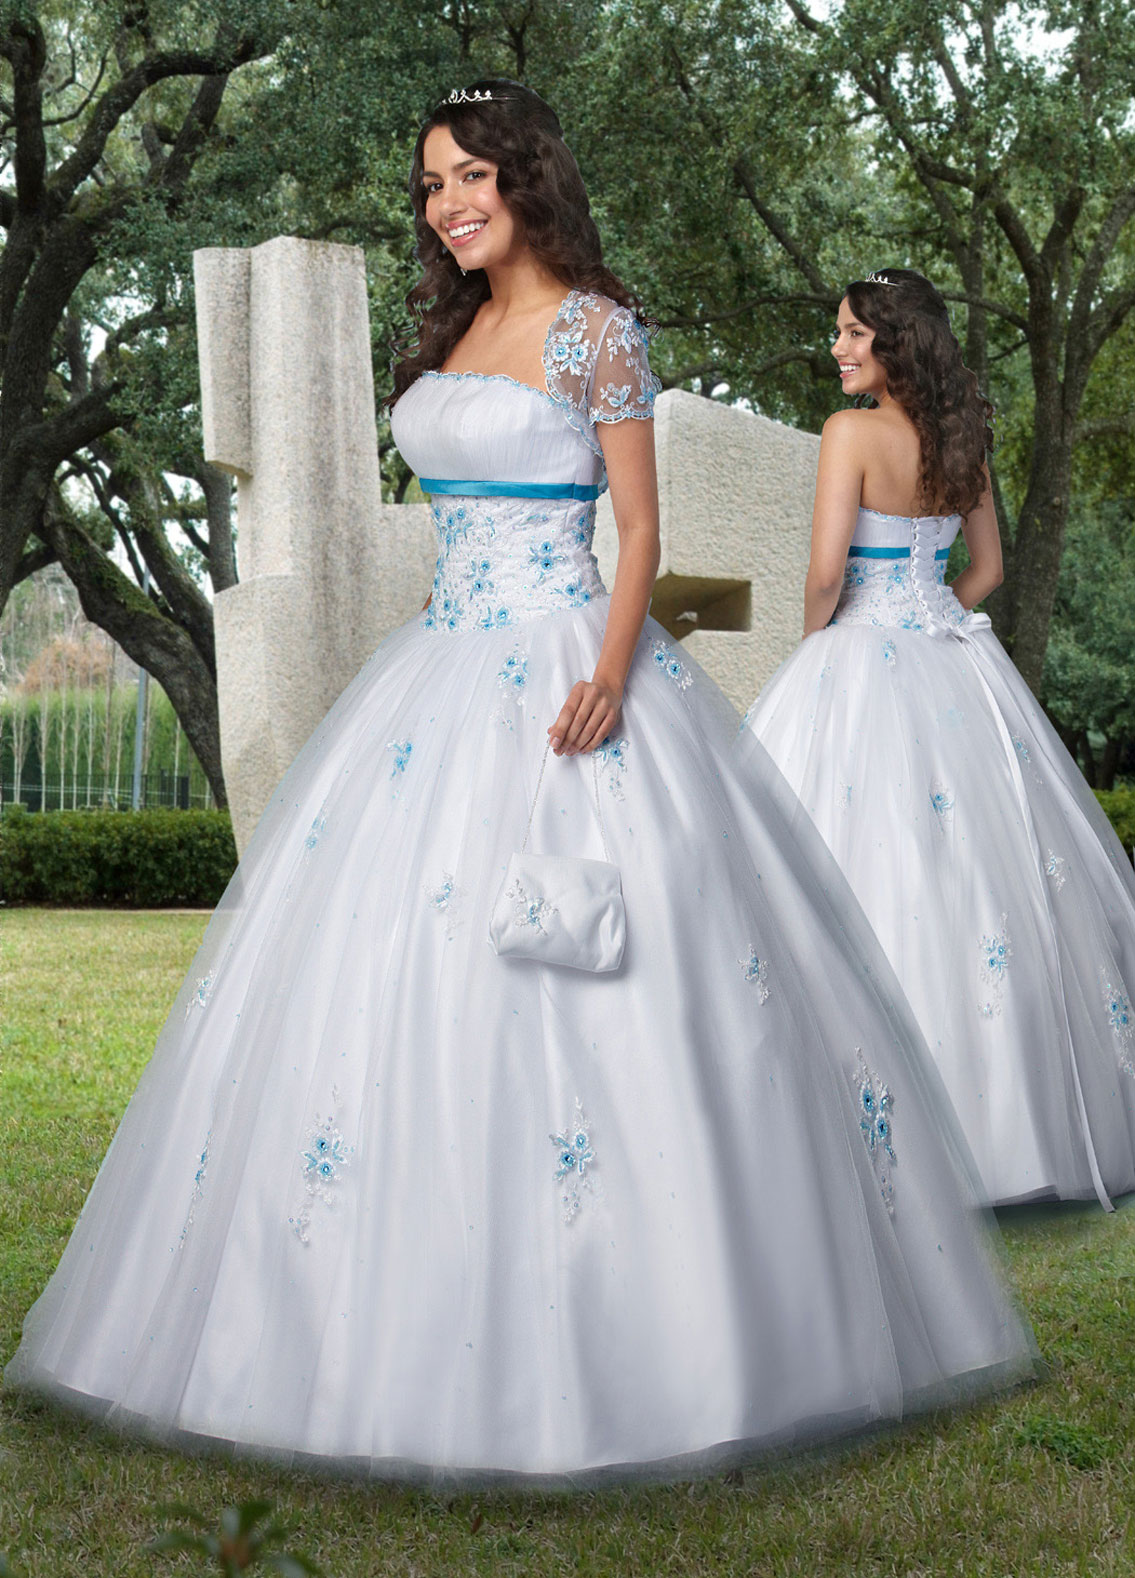 87c19ed8de8 White Ball Gown Strapless Lace up Full Length Tulle Quinceanera Dresses  With Blue Appliques